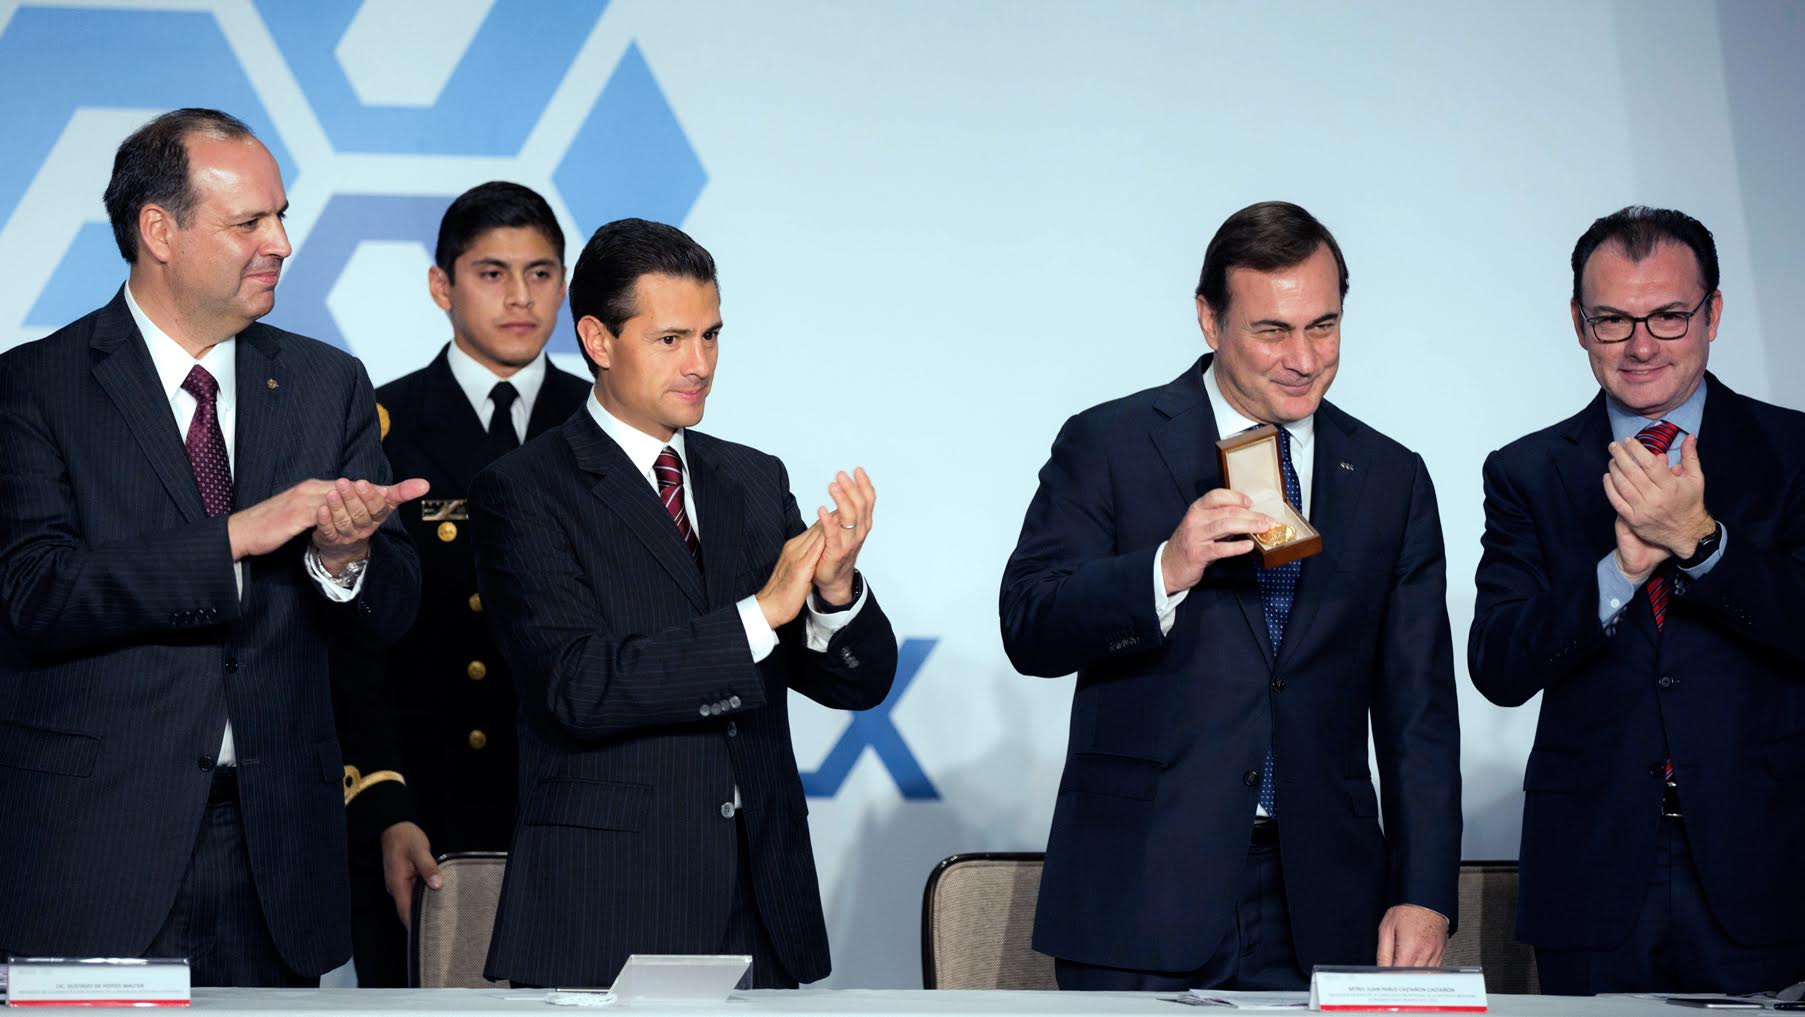 The president swore in the National Board of the Mexican Employers' Confederation (COPARMEX).